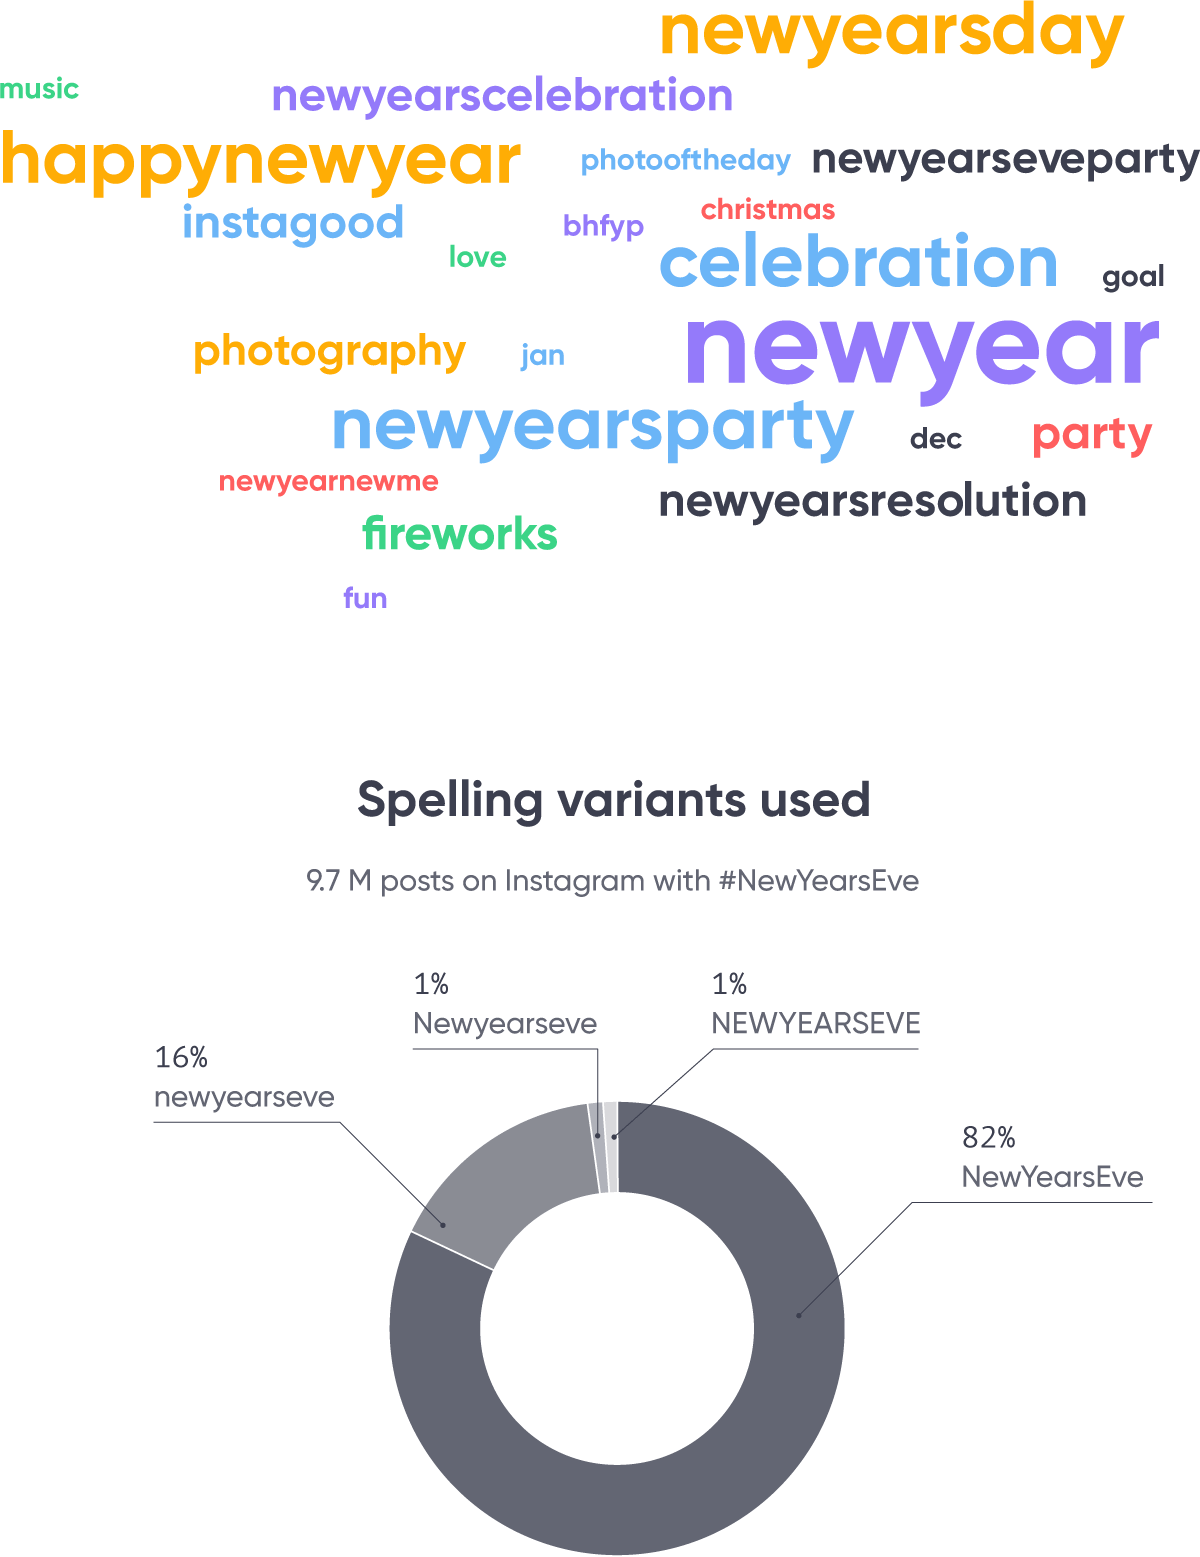 Most popular NYE Instagram hashtags